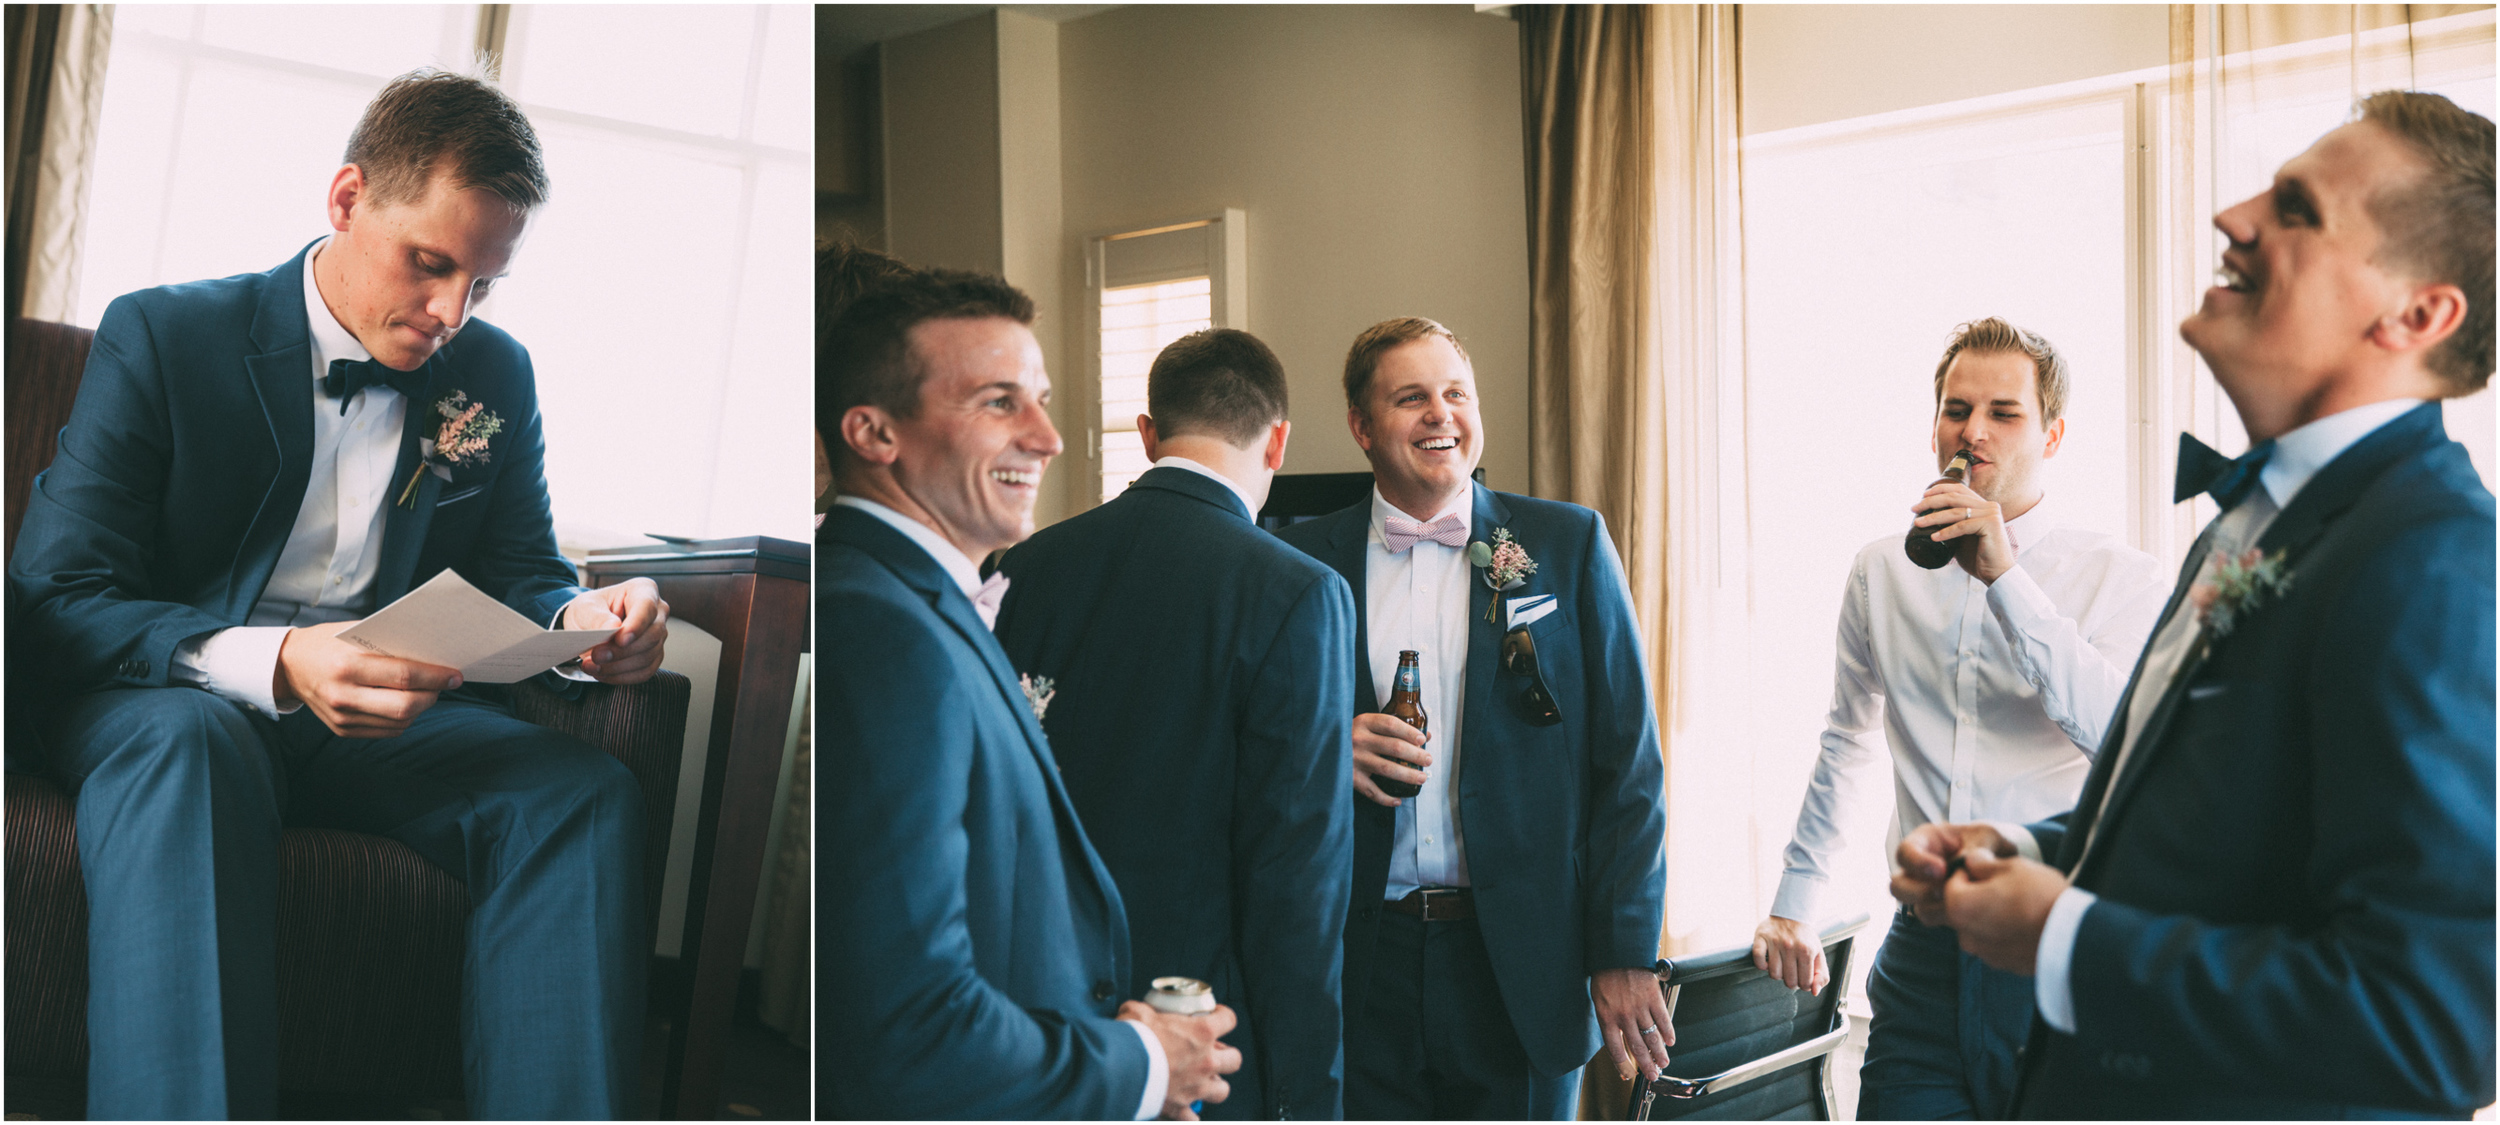 Groom opens gift from bride and hangs out with groomsmen